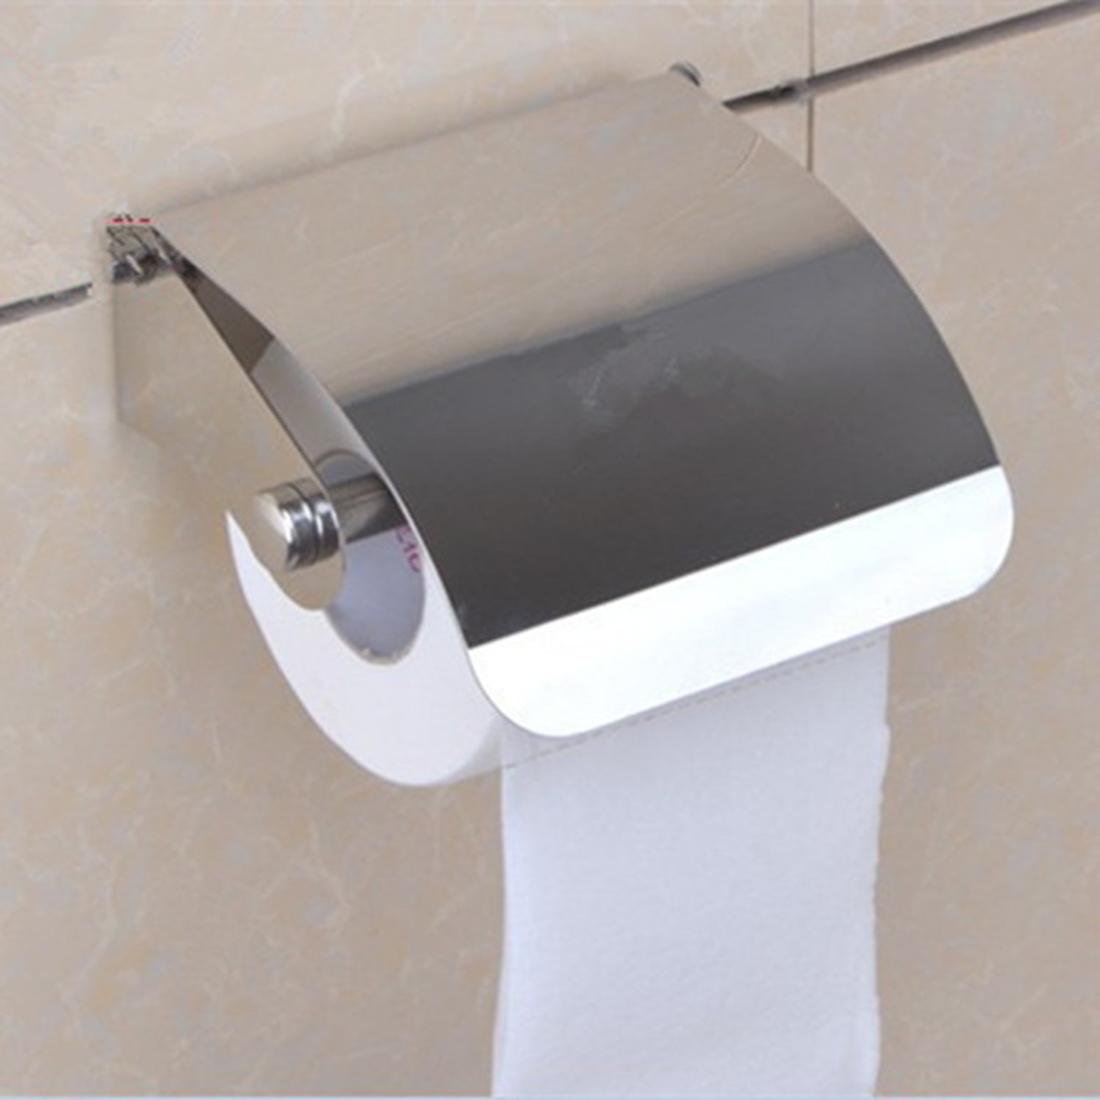 Compare Prices On Metal Toilet Roll Holder Online ShoppingBuy -  bathroom paper towel holder